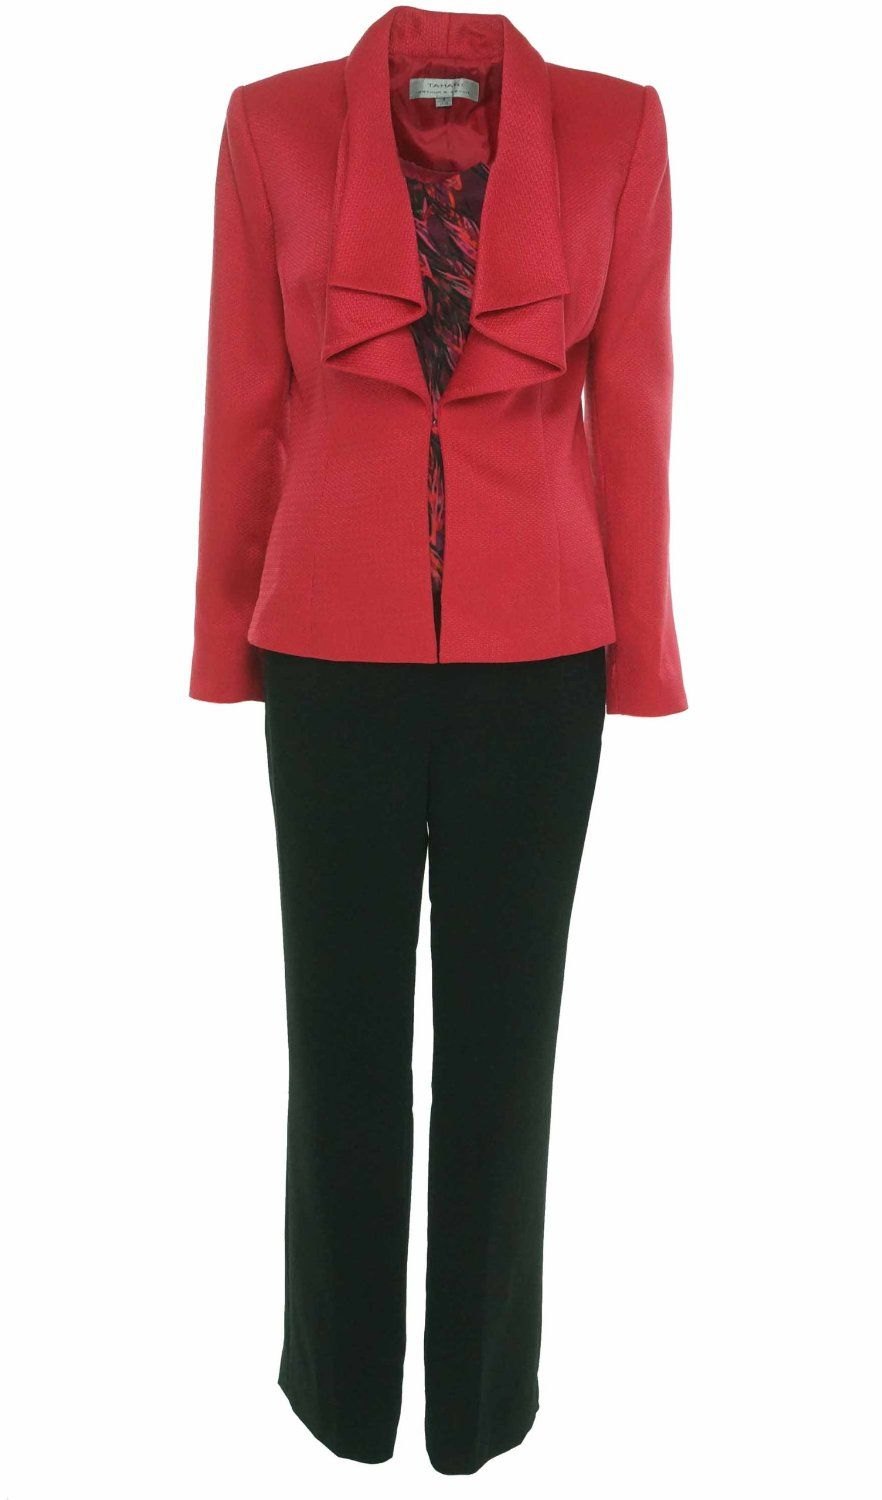 ac673c1a002f5 Pin by Angela Thomas on Stylish Pant Suits | Suits, Women, Pants